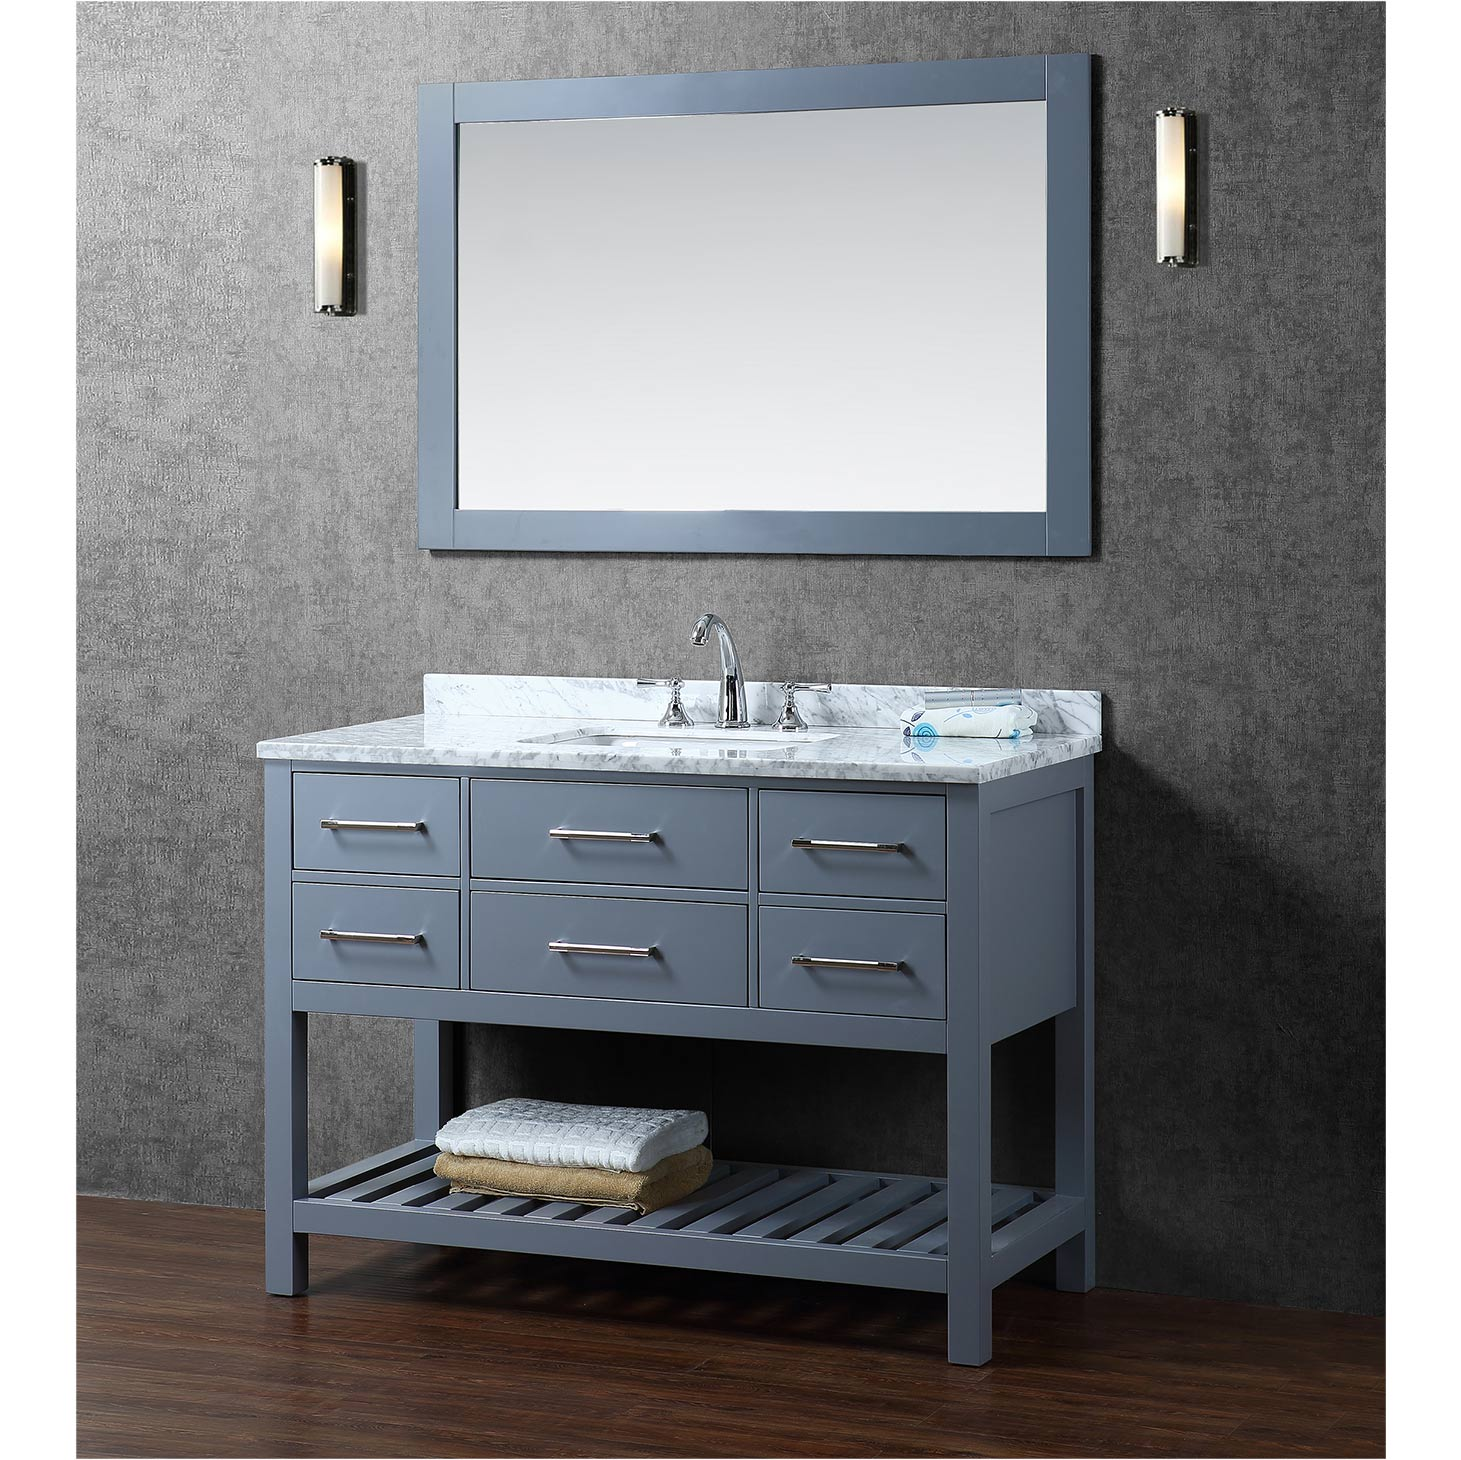 48 Inch Bathroom Vanity With Sink. Antonia 48  Solid Wood Single Bathroom Vanity in Charcoal Grey HM 13002 WMSQ CG Buy Inch